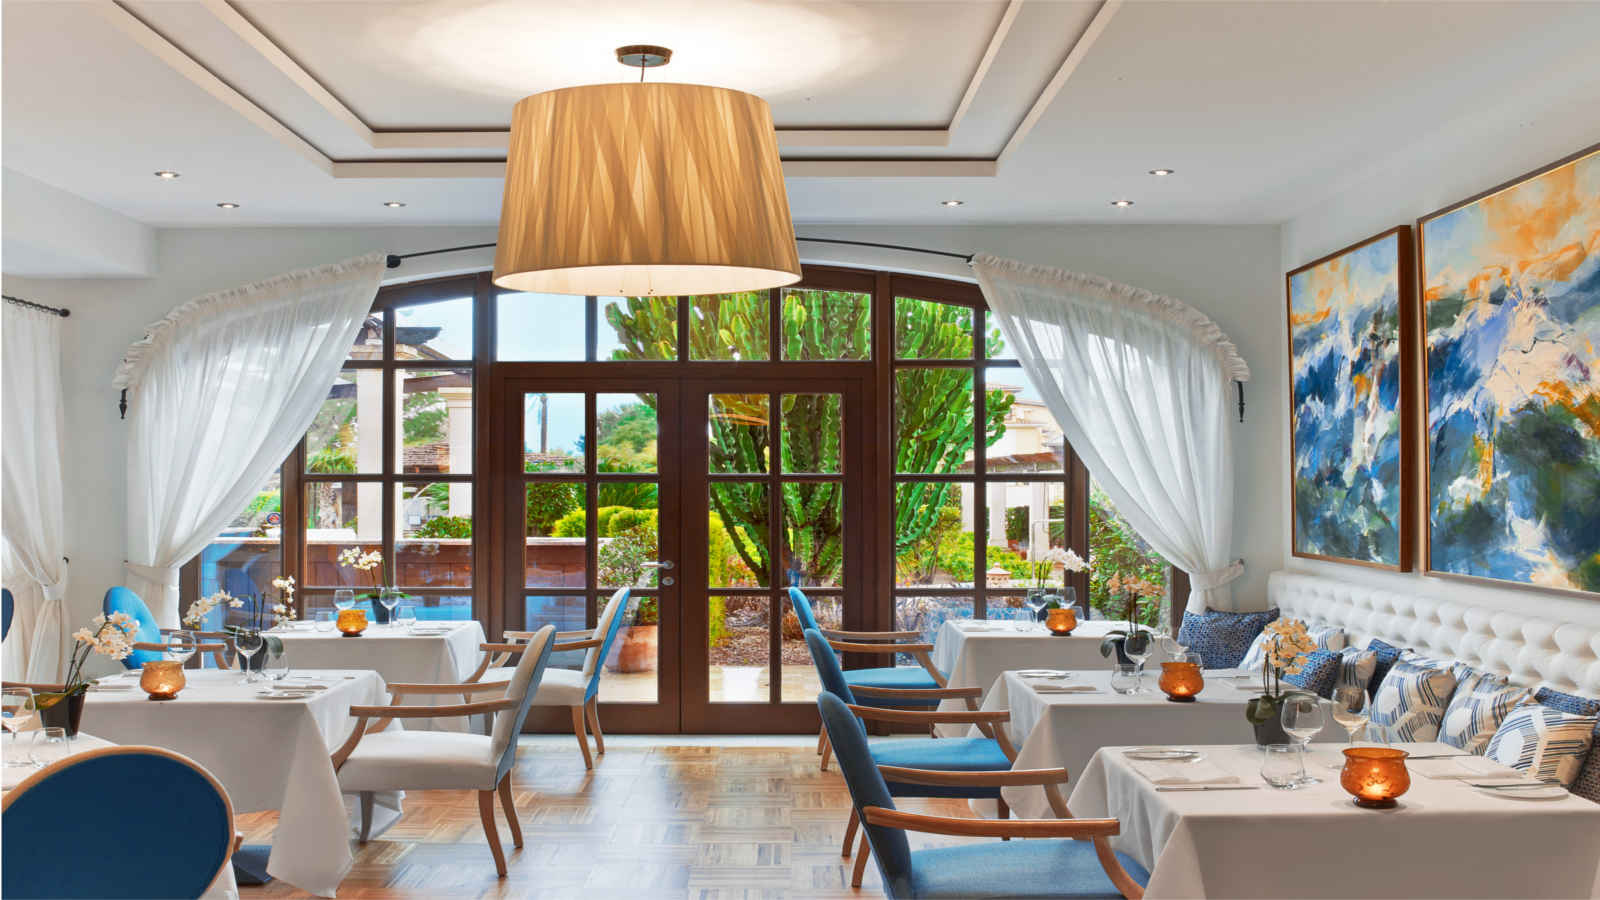 Restaurant Aqua | The St. Regis Mardavall Mallorca Resort